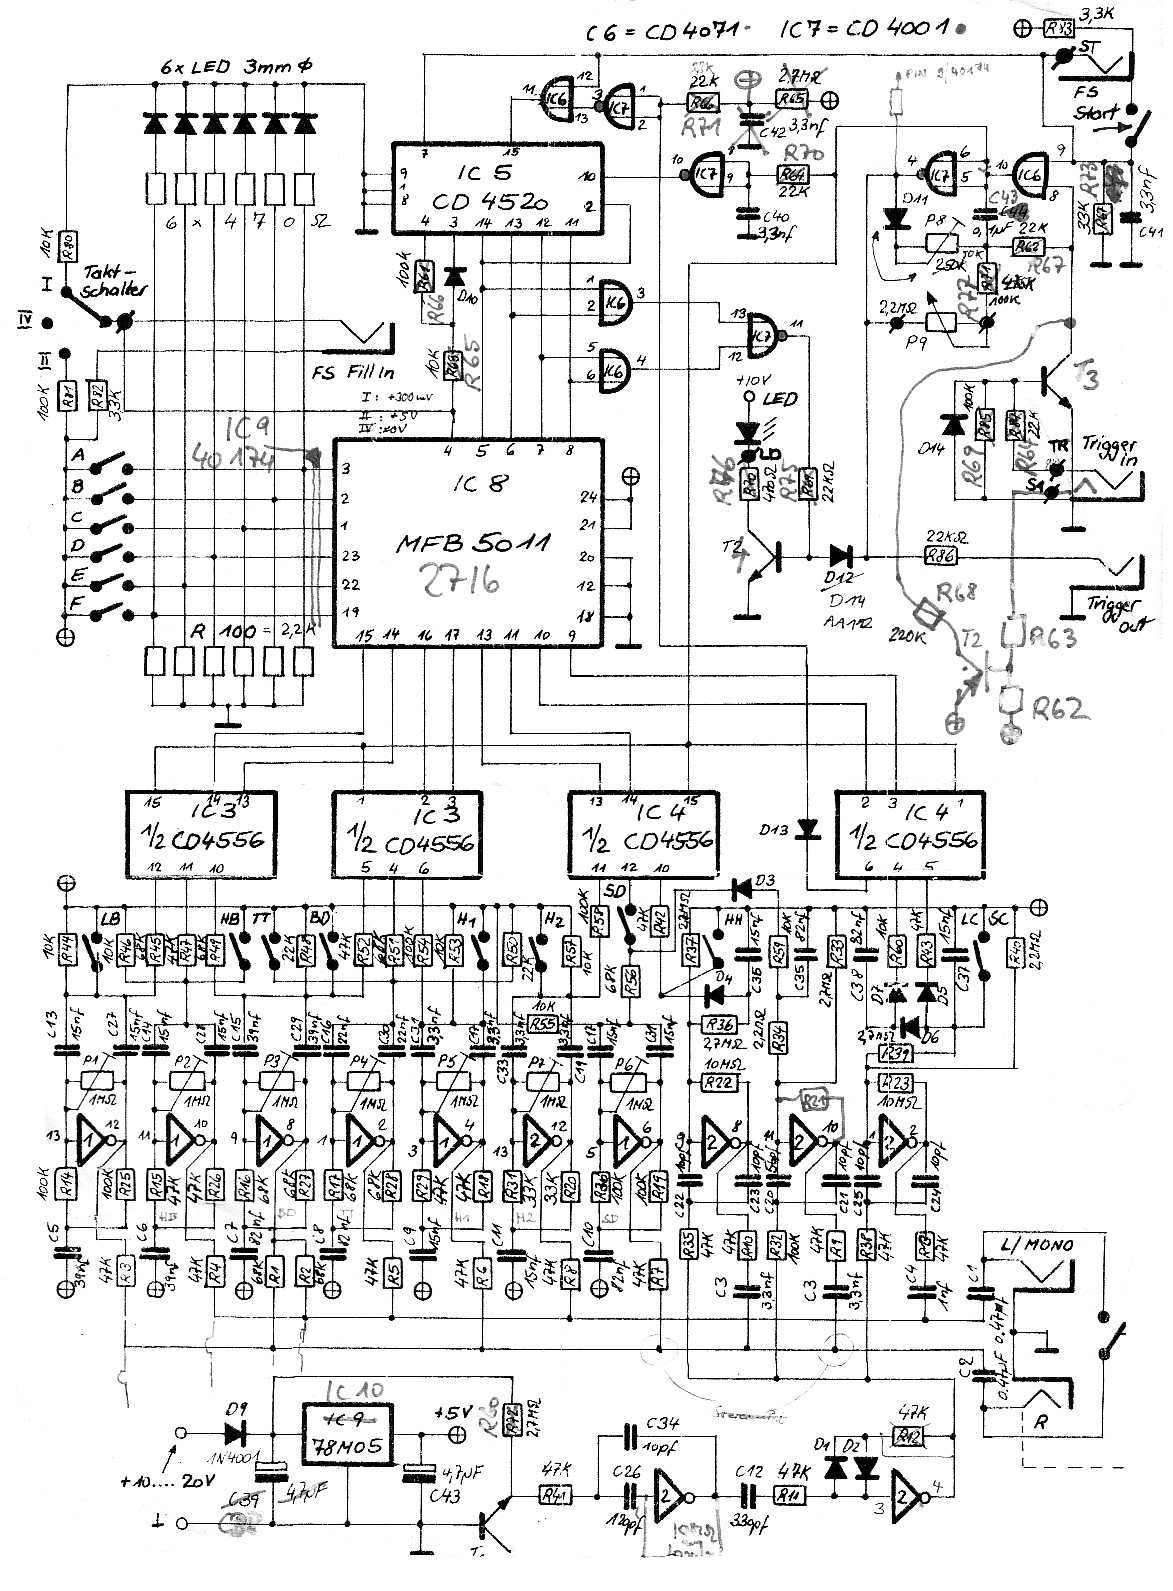 Yamaha Organ Wiring Schematics Diagrams Mercury 80 Wire Diagram Synthesizer Service Manuals Free Download Chinese Atv Kohler Engine